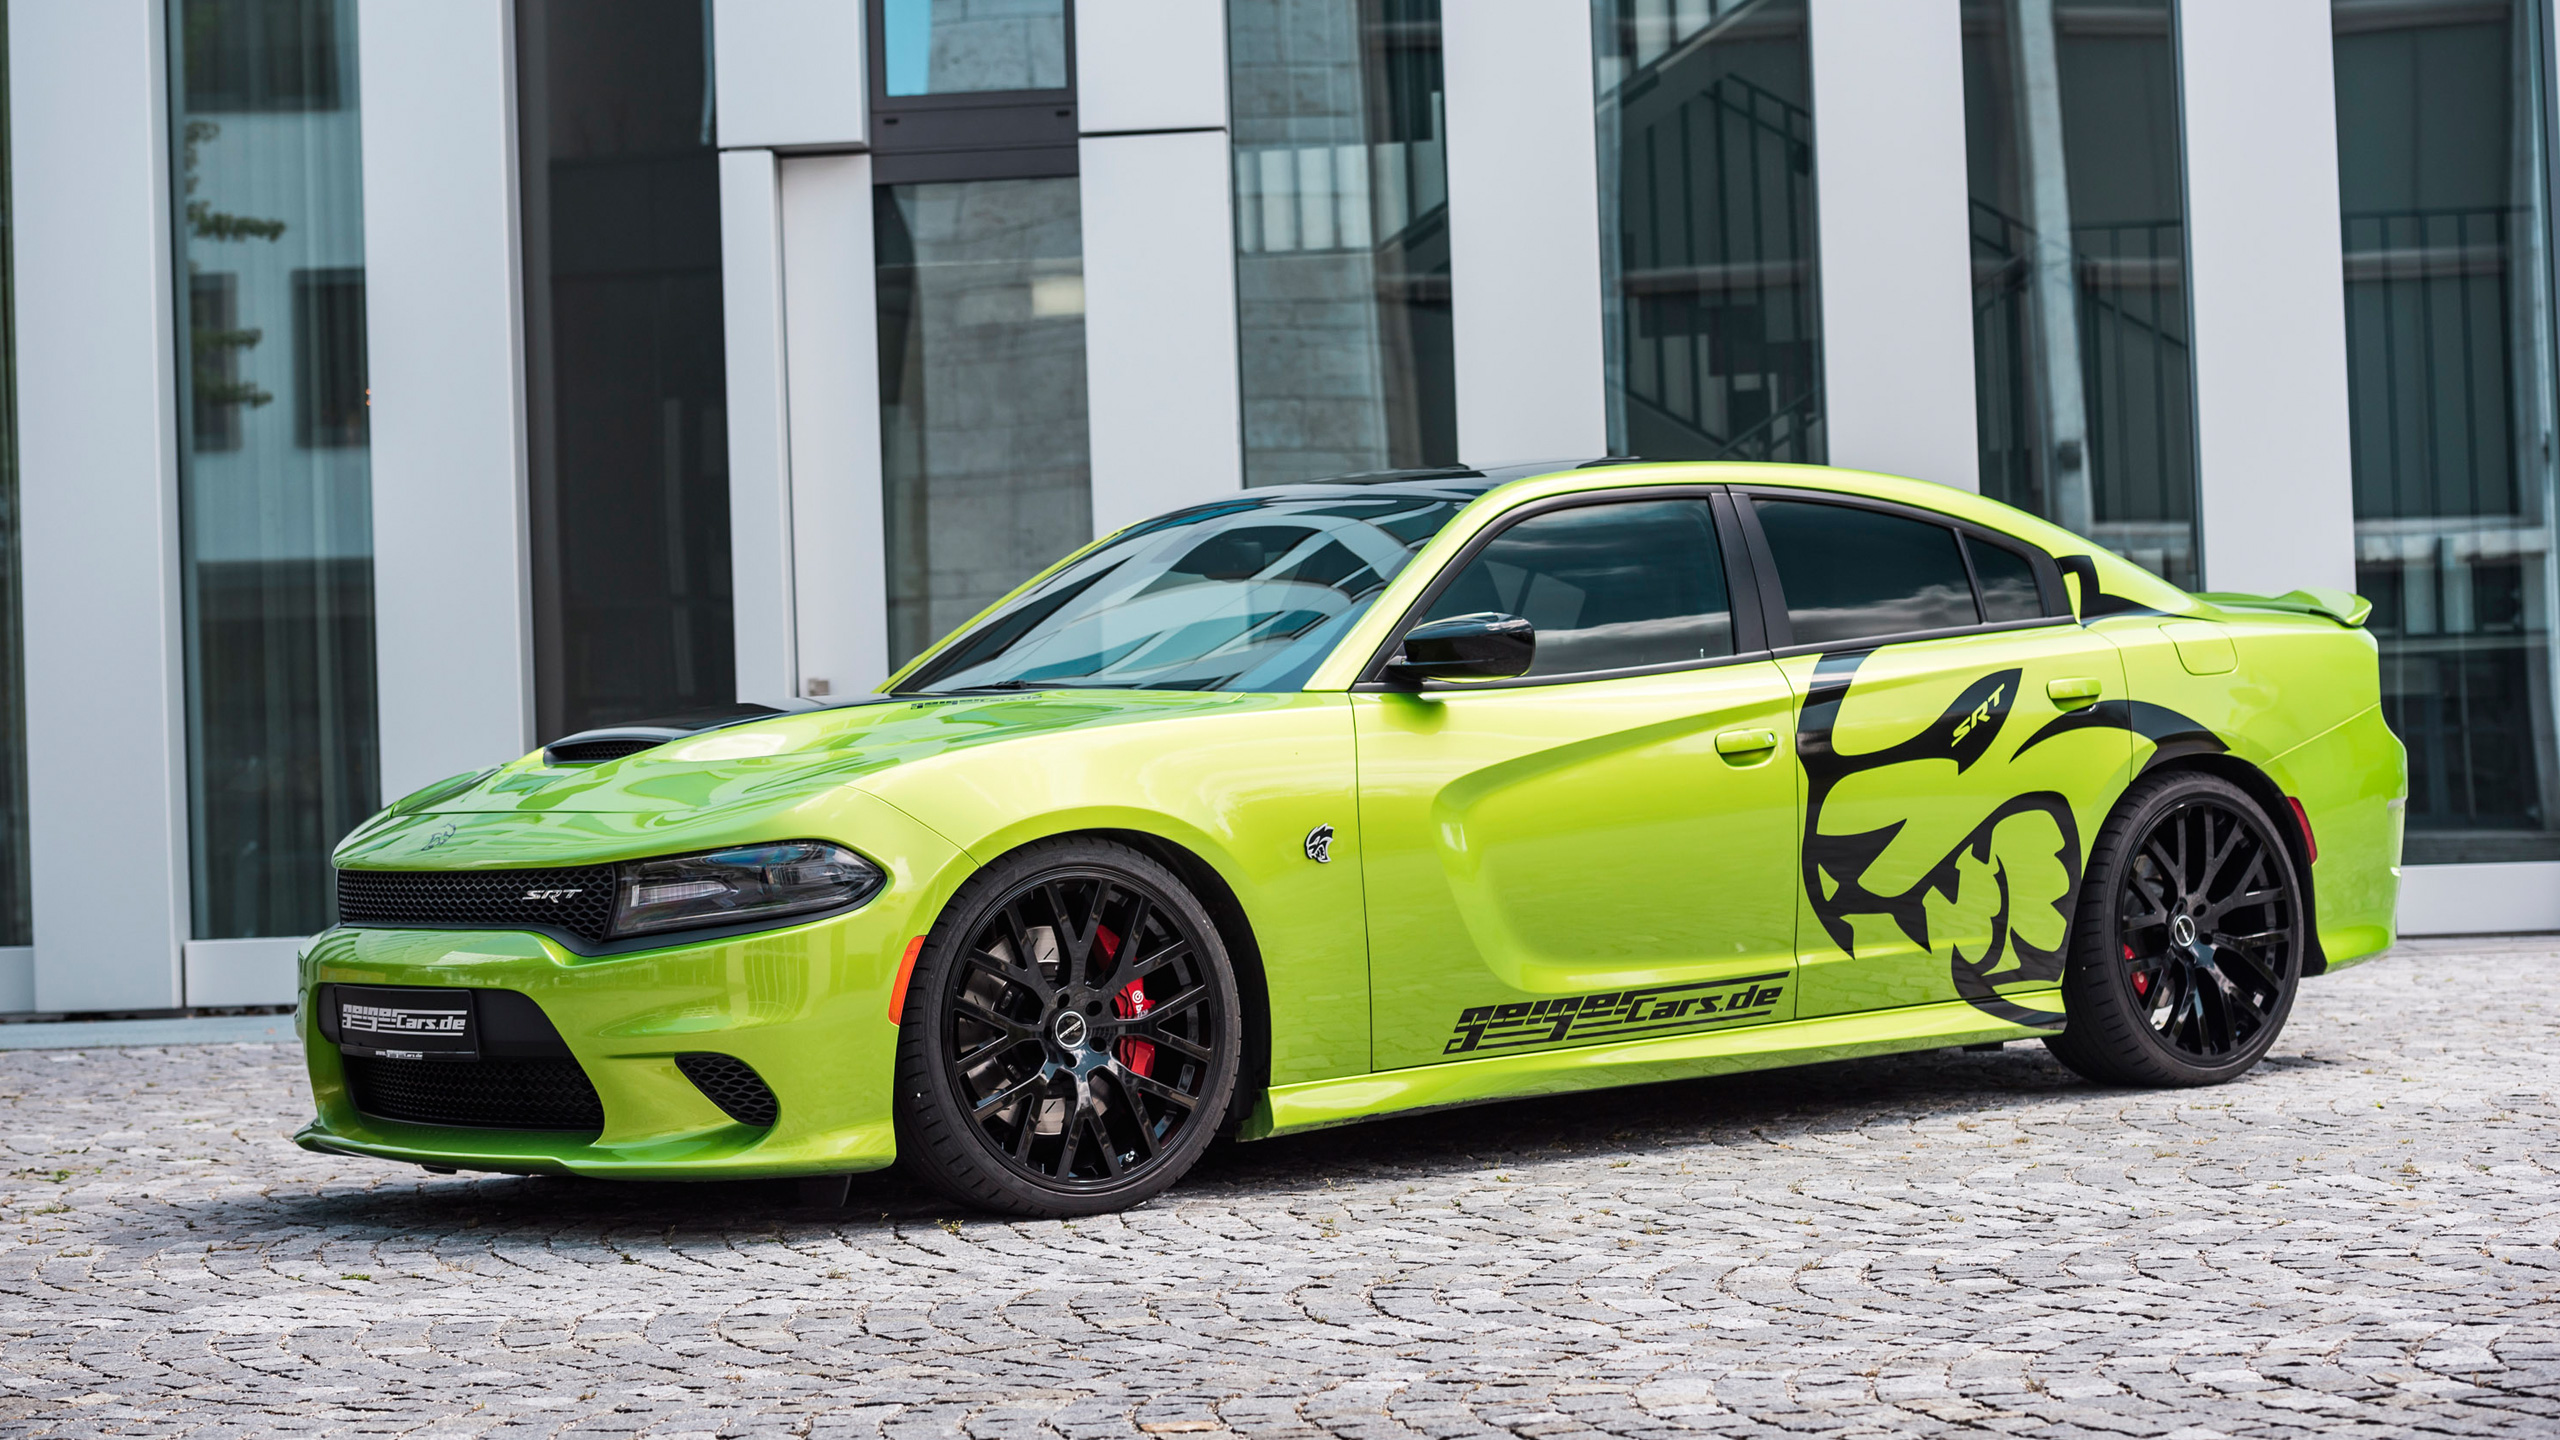 Dodge charger hellcat wallpaper hd